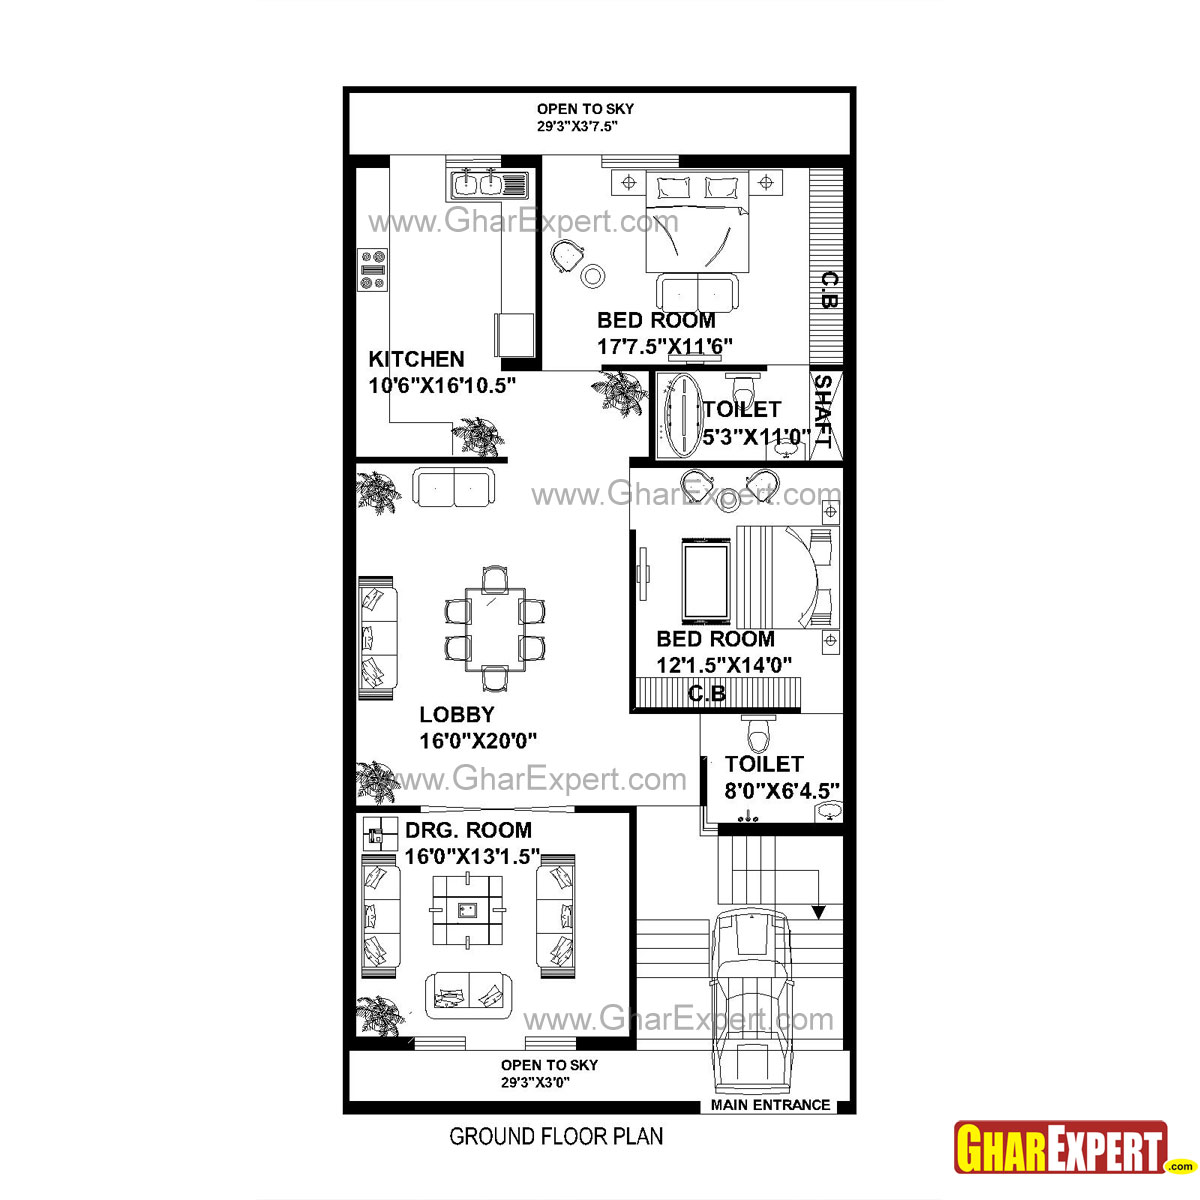 Merveilleux House Plan For 30 Feet By 60 Feet Plot (Plot Size 200 Square Yards)    GharExpert.com